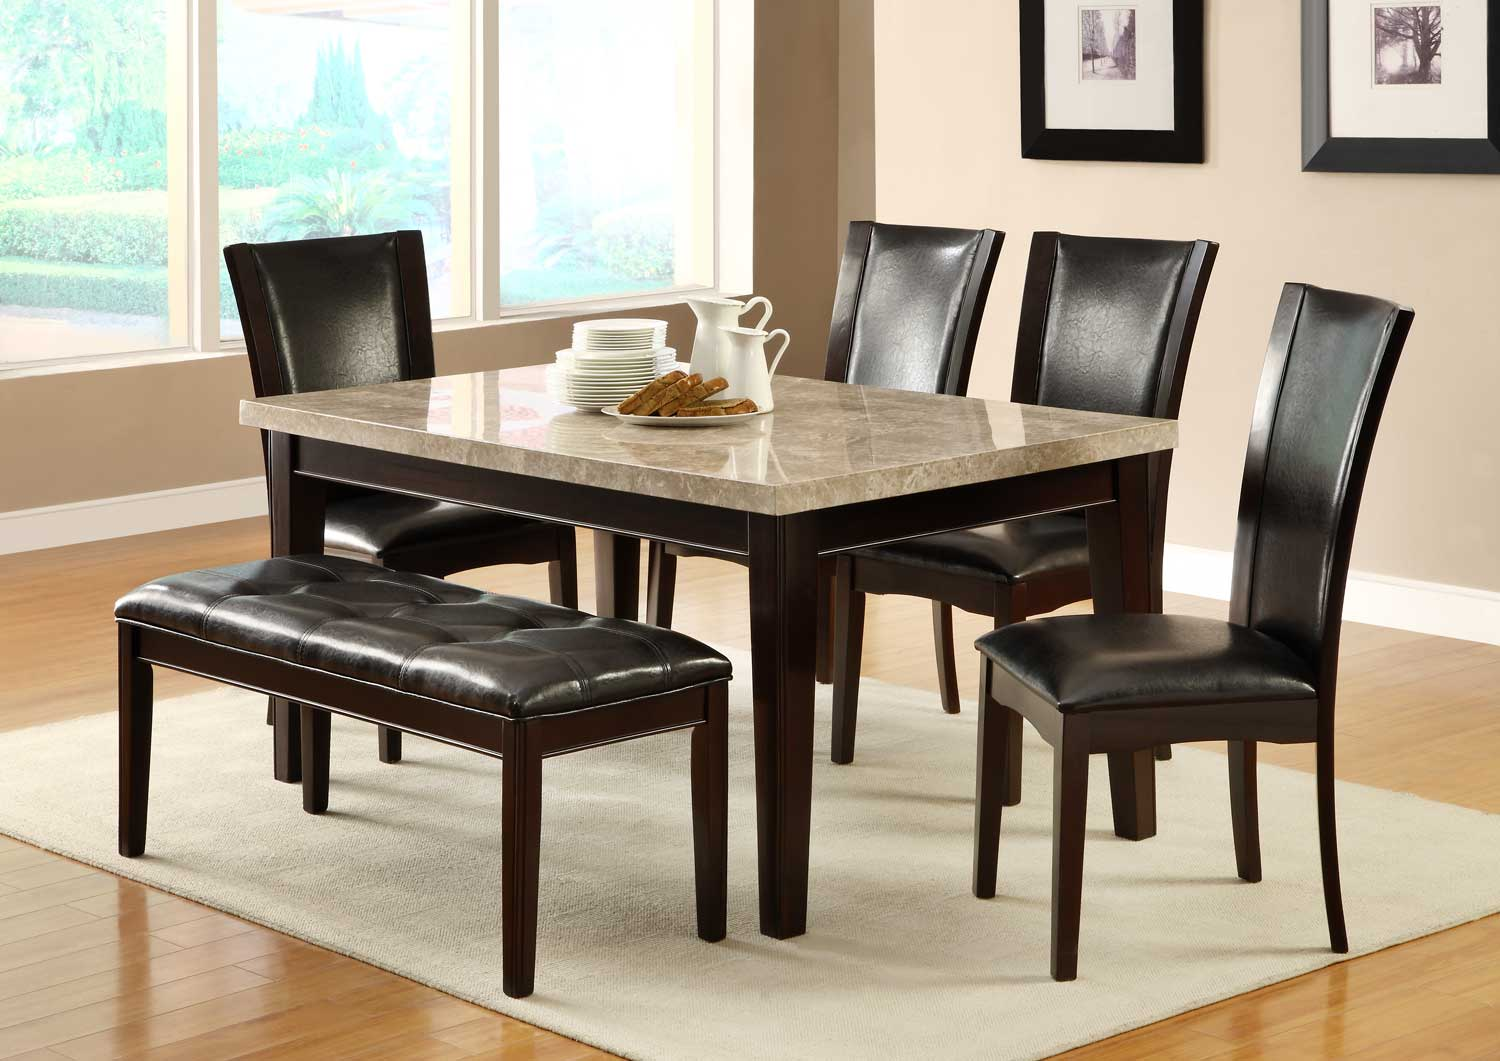 028f5522316 Homelegance Hahn Dining Room Set - Hahn Collection  5 Reviews ...